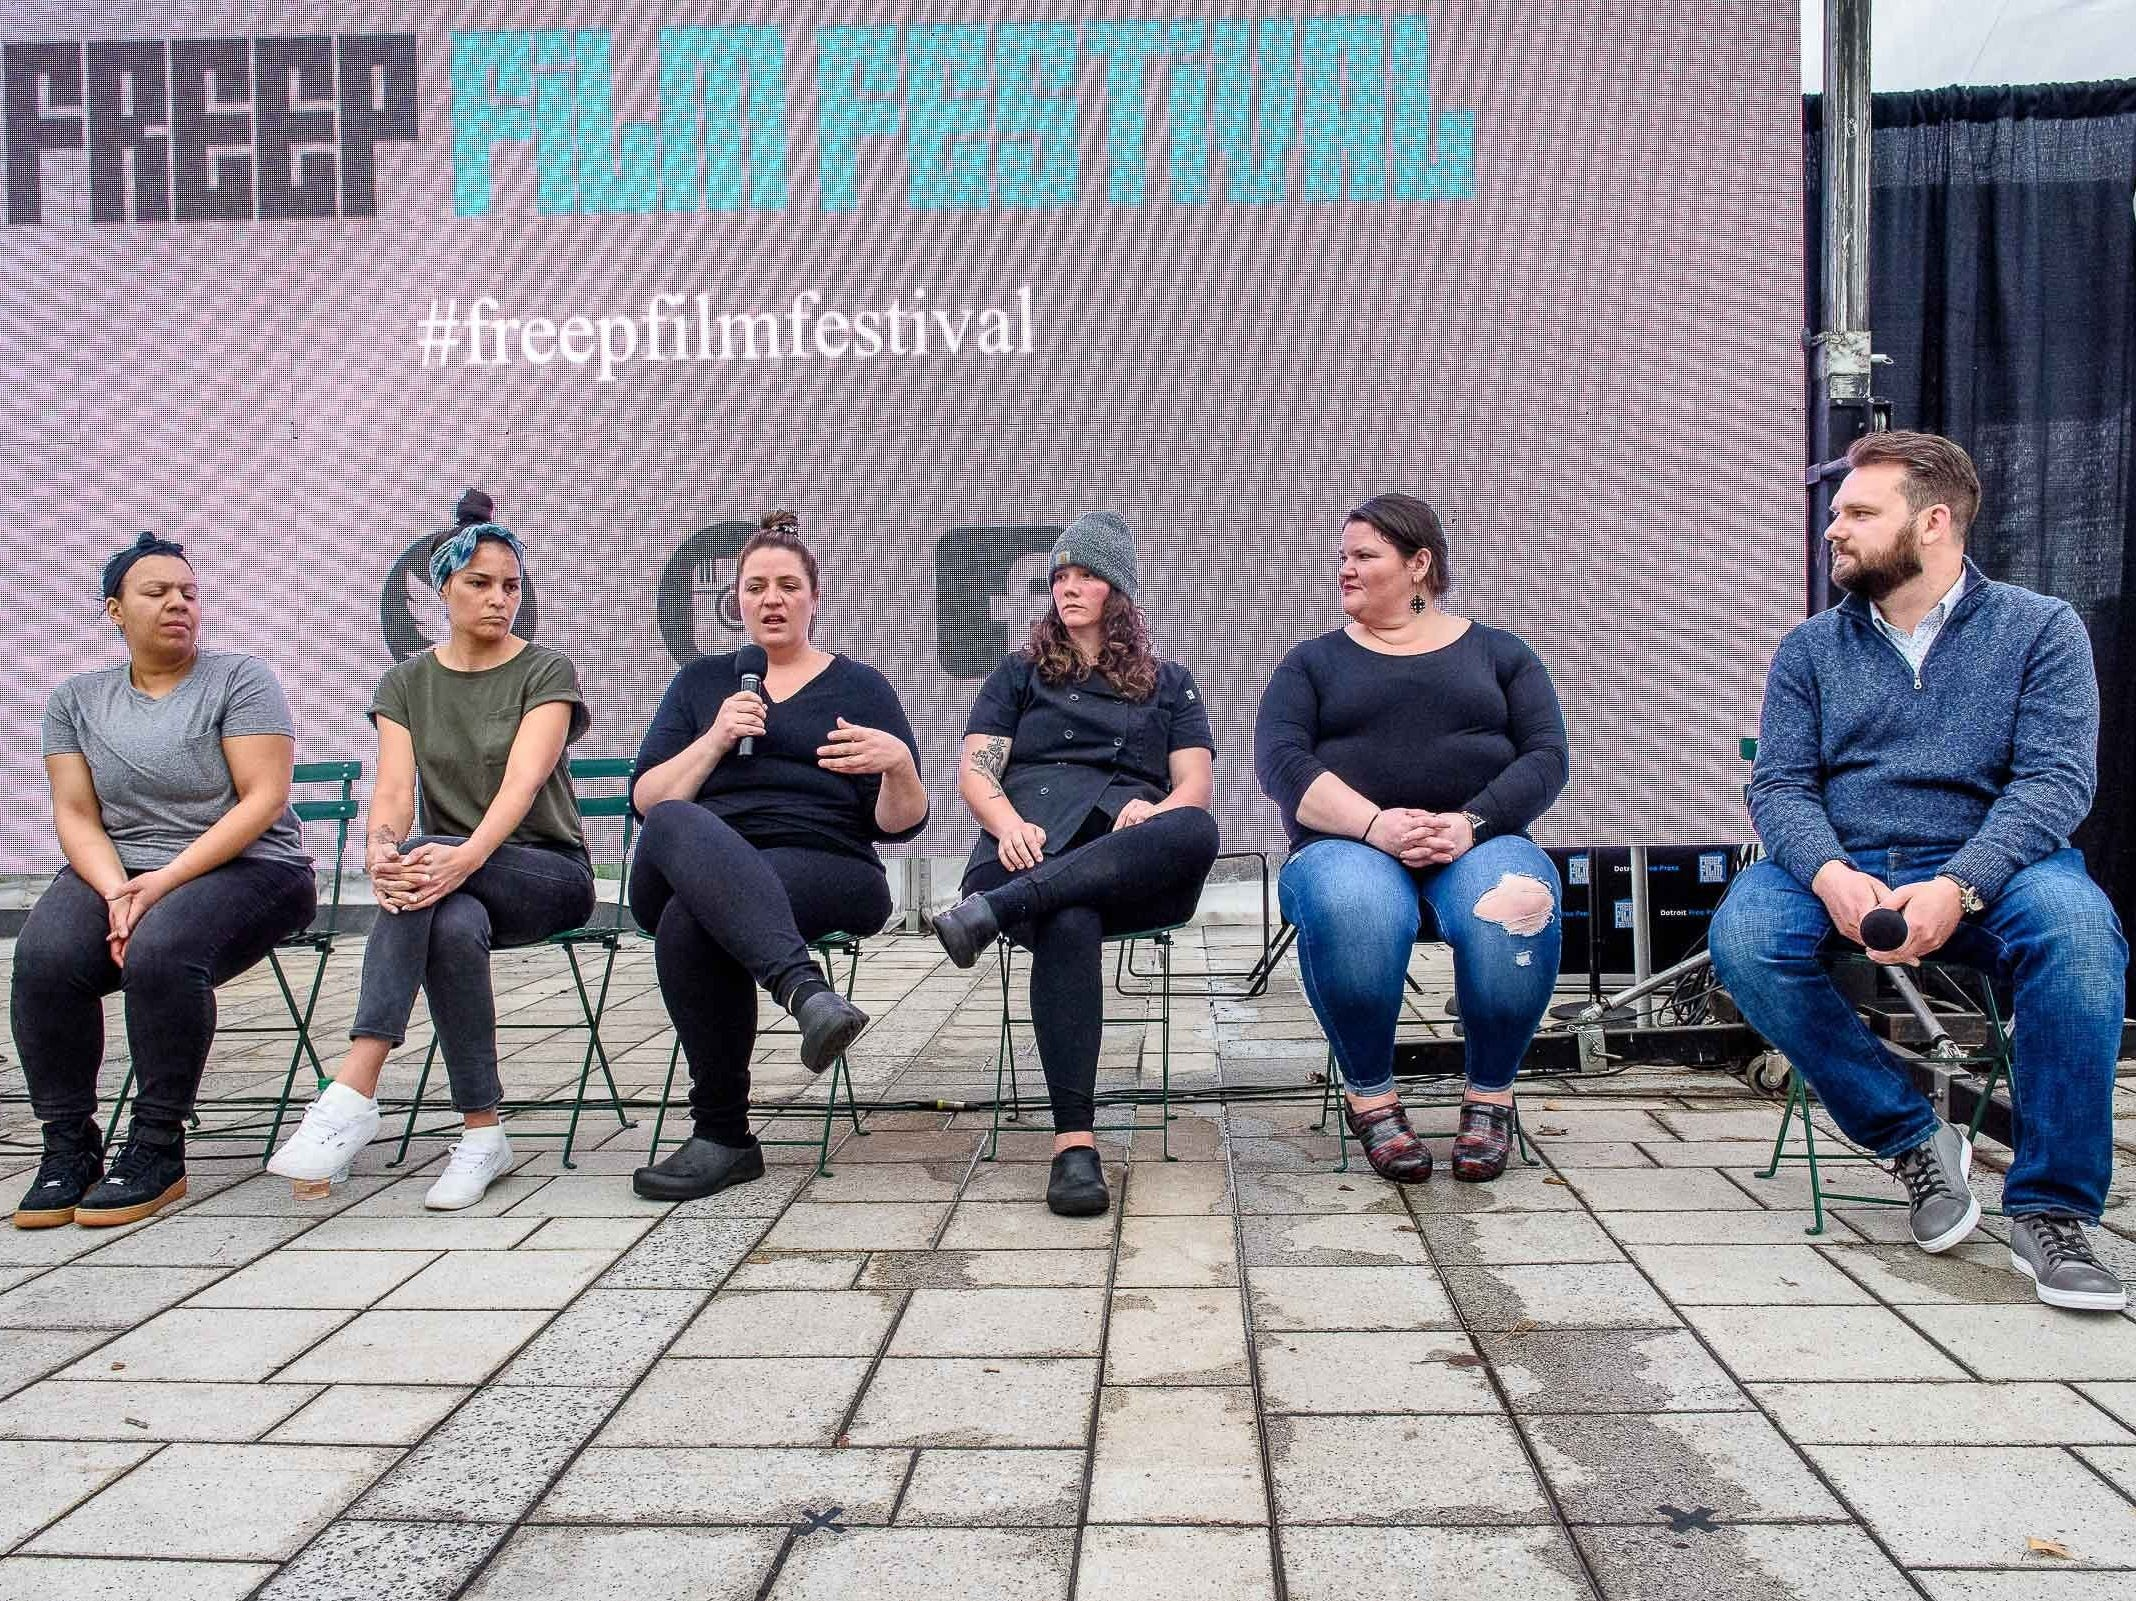 "The Freep Film festival presented the Film 'The Heat: A Kitchen Revolution"" at Beacon Park following brunch at Lumen restaurant April 14, 2019. A panel discussion lead by mediator Mark Kurlyandchik with chefs Gabby Milton of Lumen, Sarah Welsh of Marrow, Emmele Herrod of Hazel and Kiki Louya and Rohani Foulkes, owners of Folk."